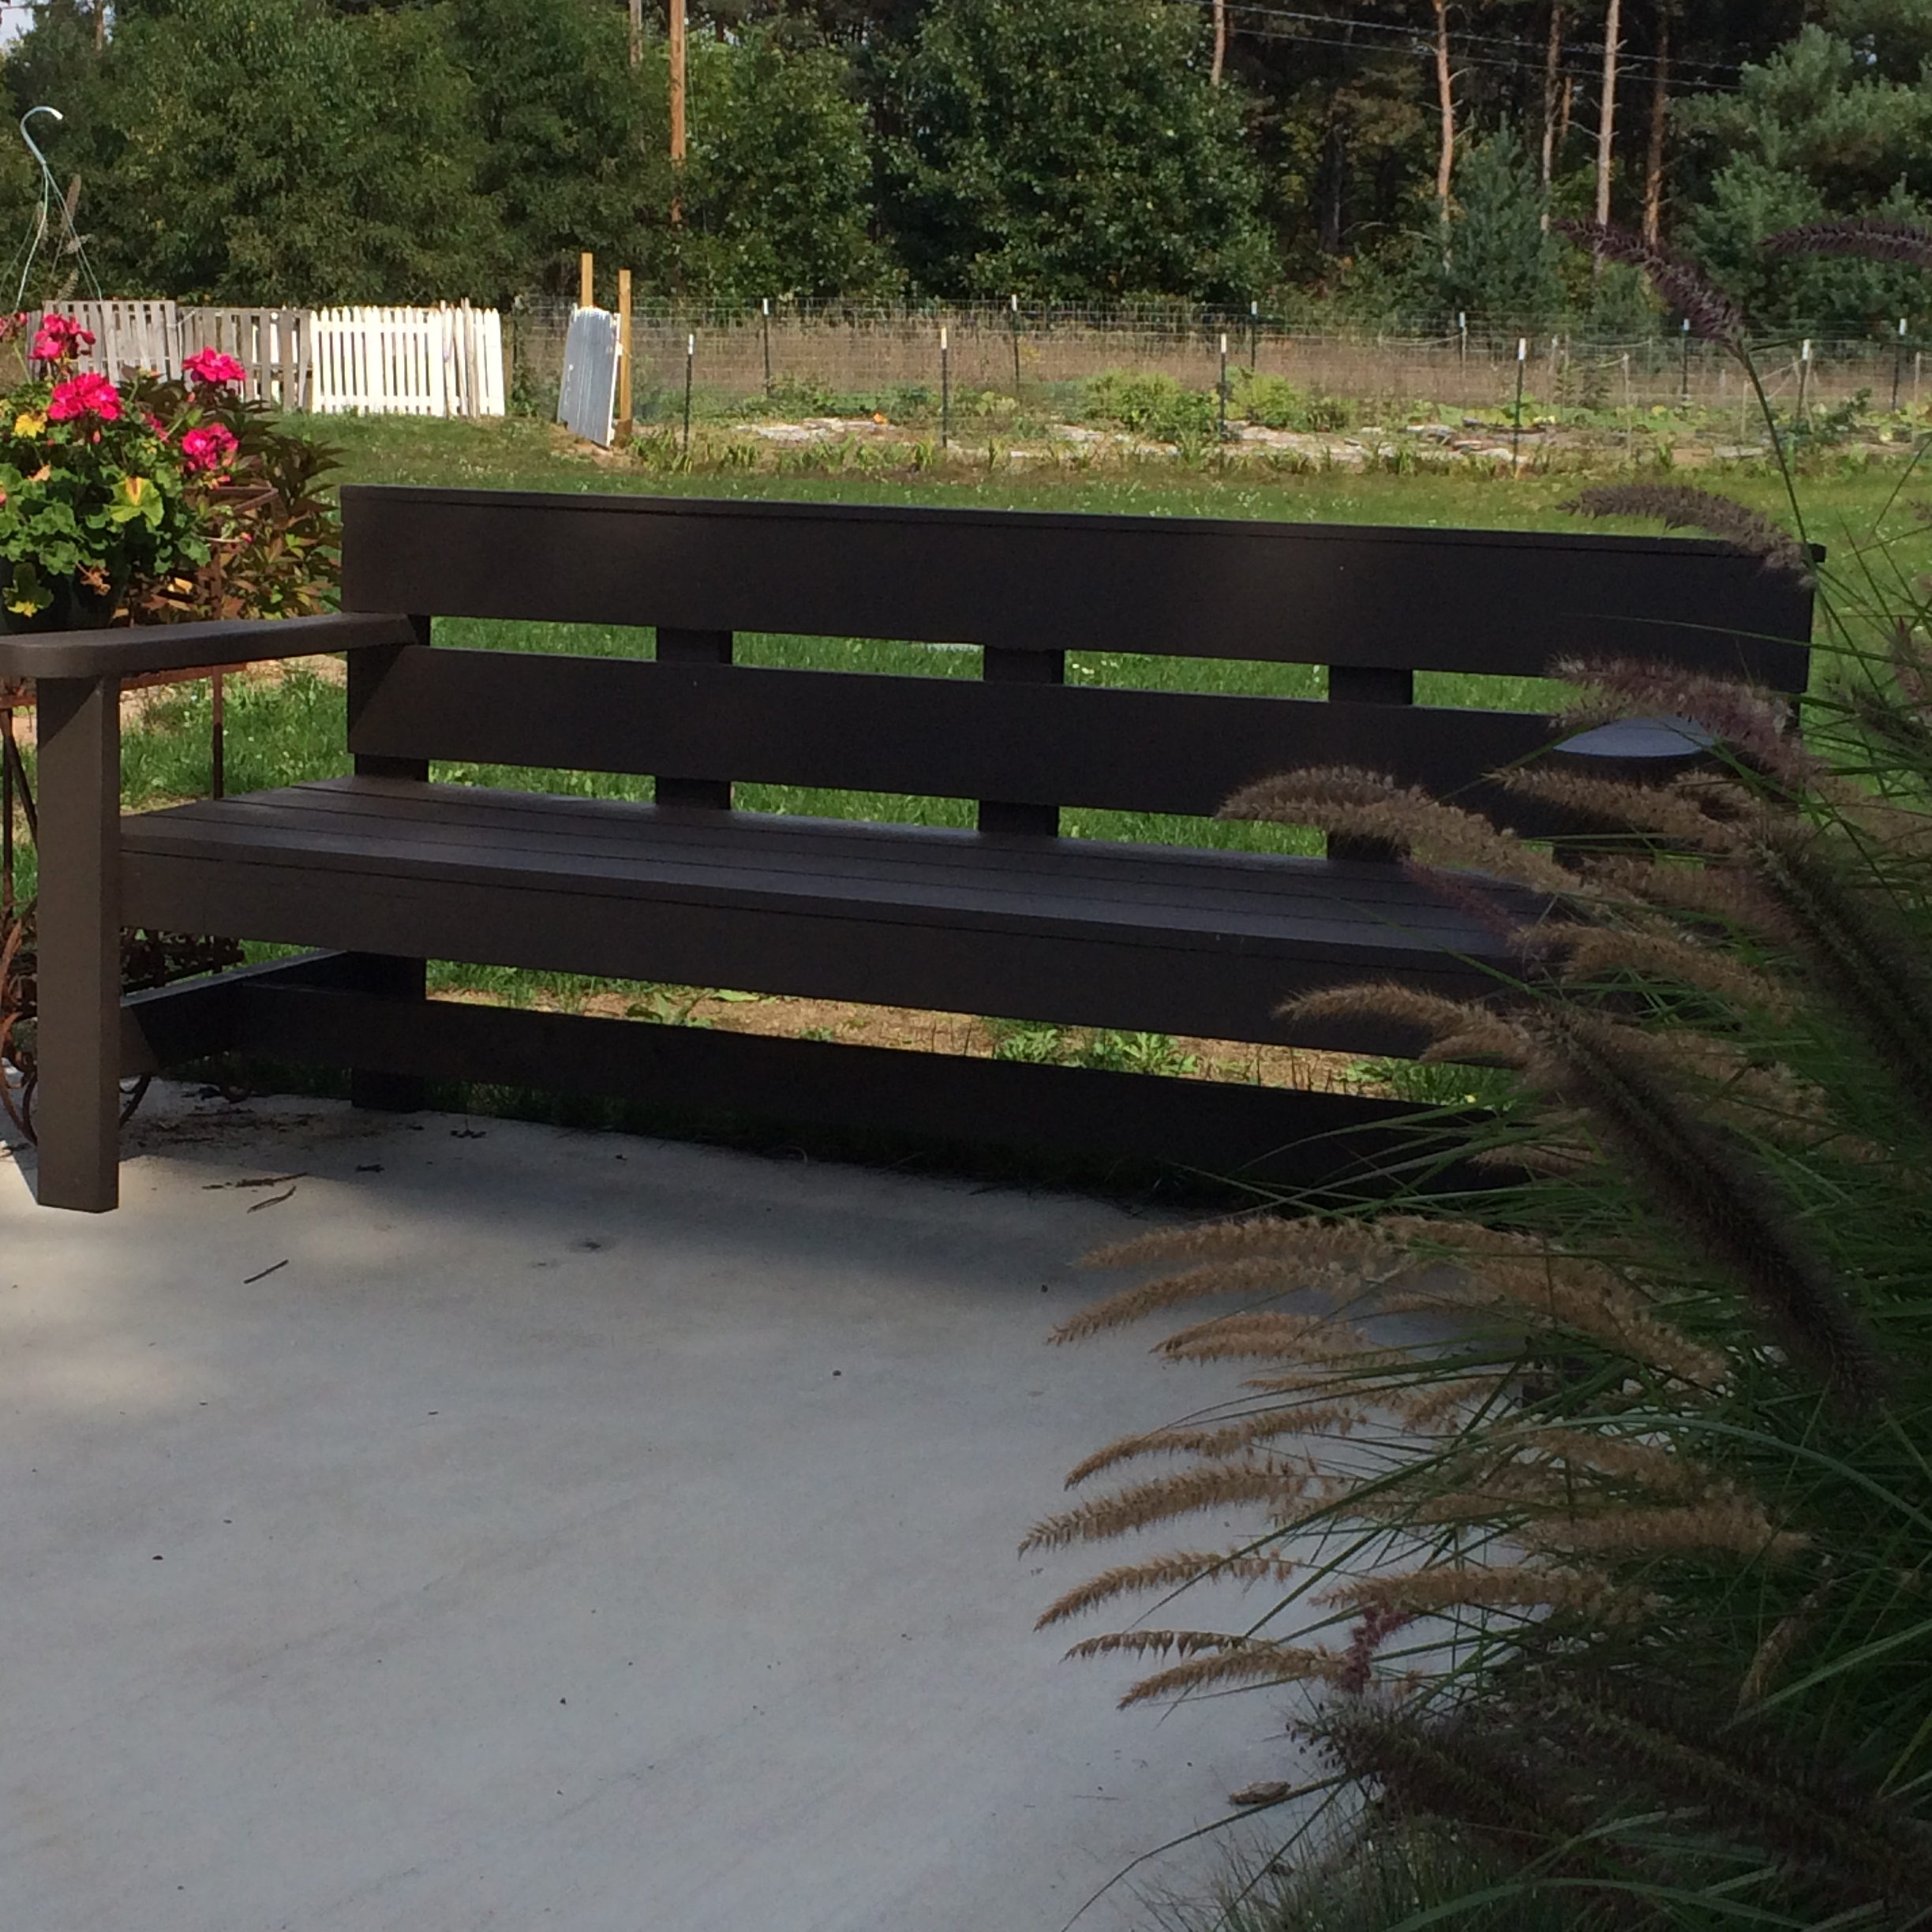 Park Bench Diy Plans: Modern Park Bench - DIY Projects